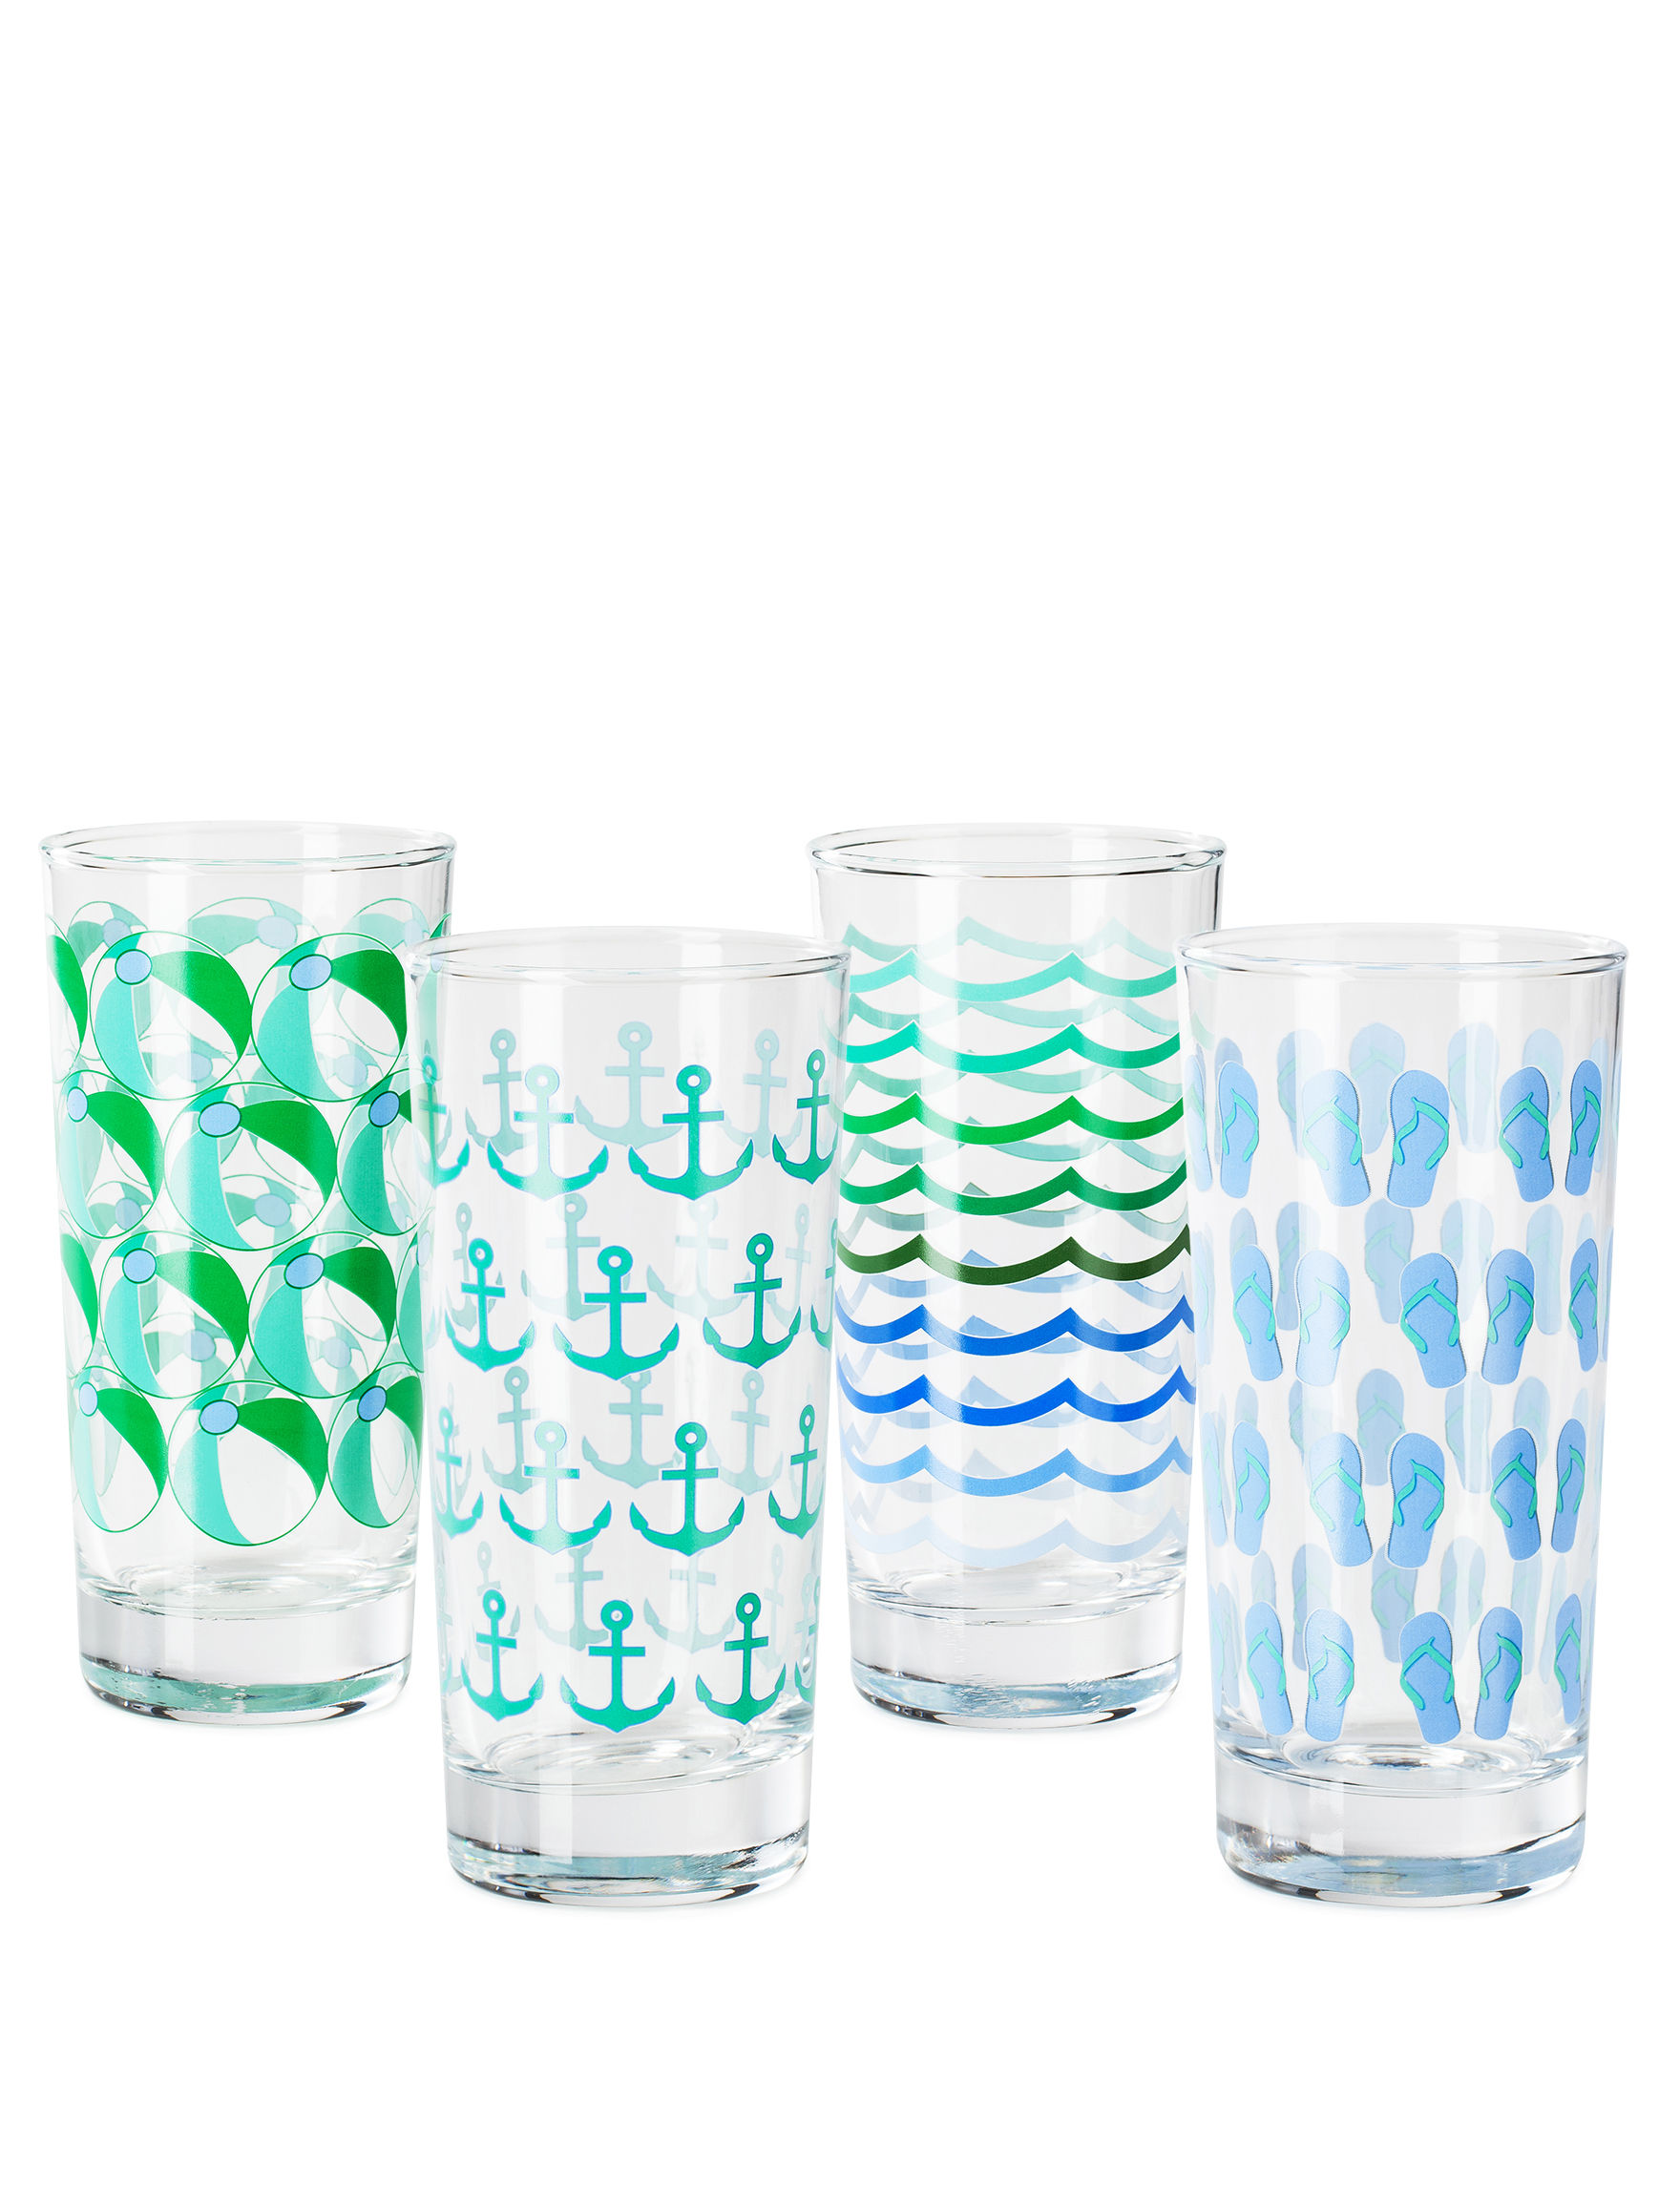 Circle Glass Clear Tumblers Drinkware